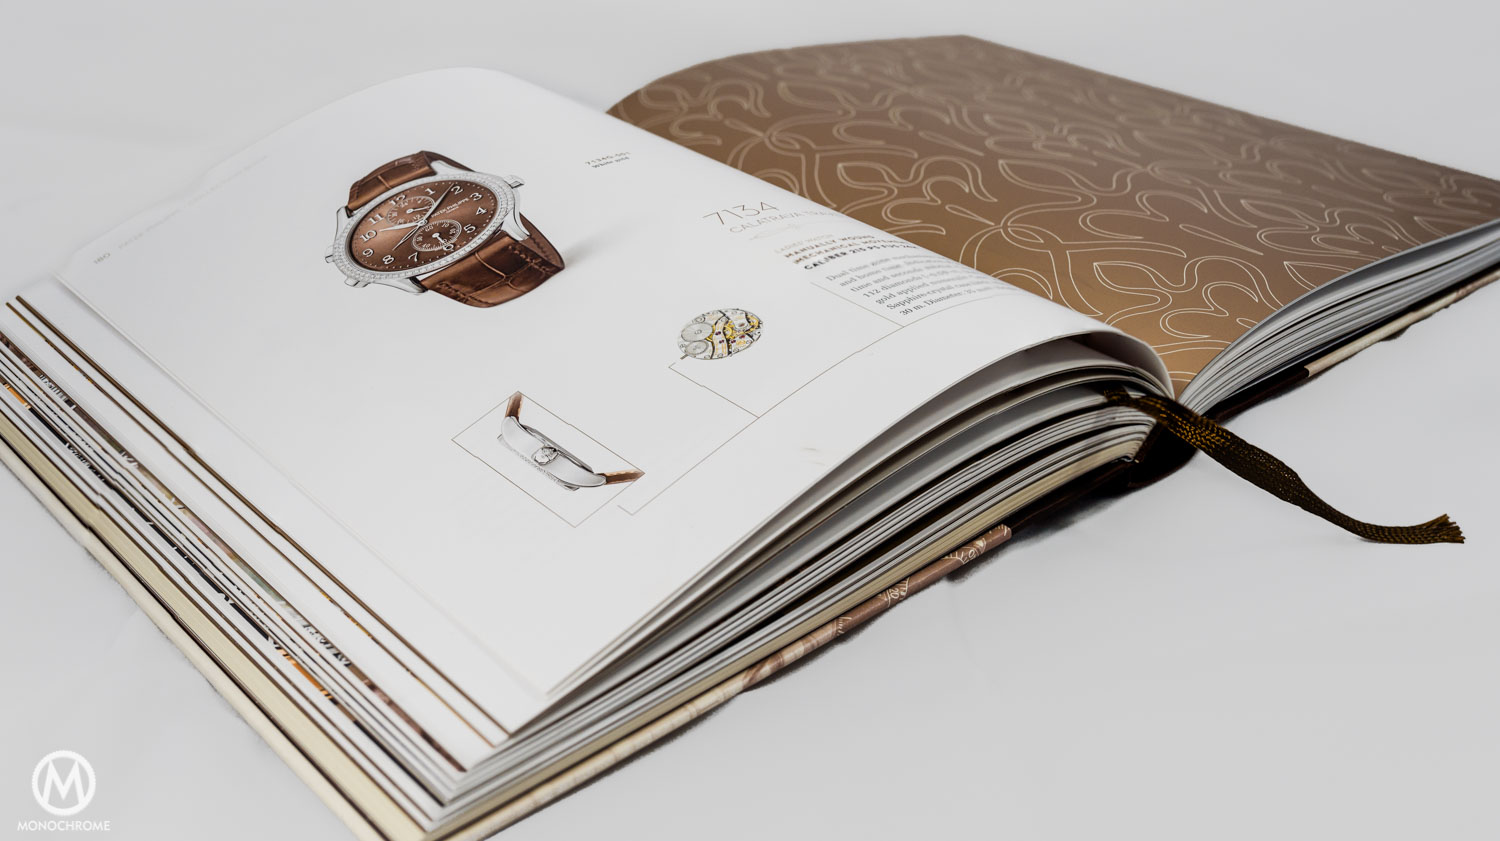 Patek Philippe Collection book